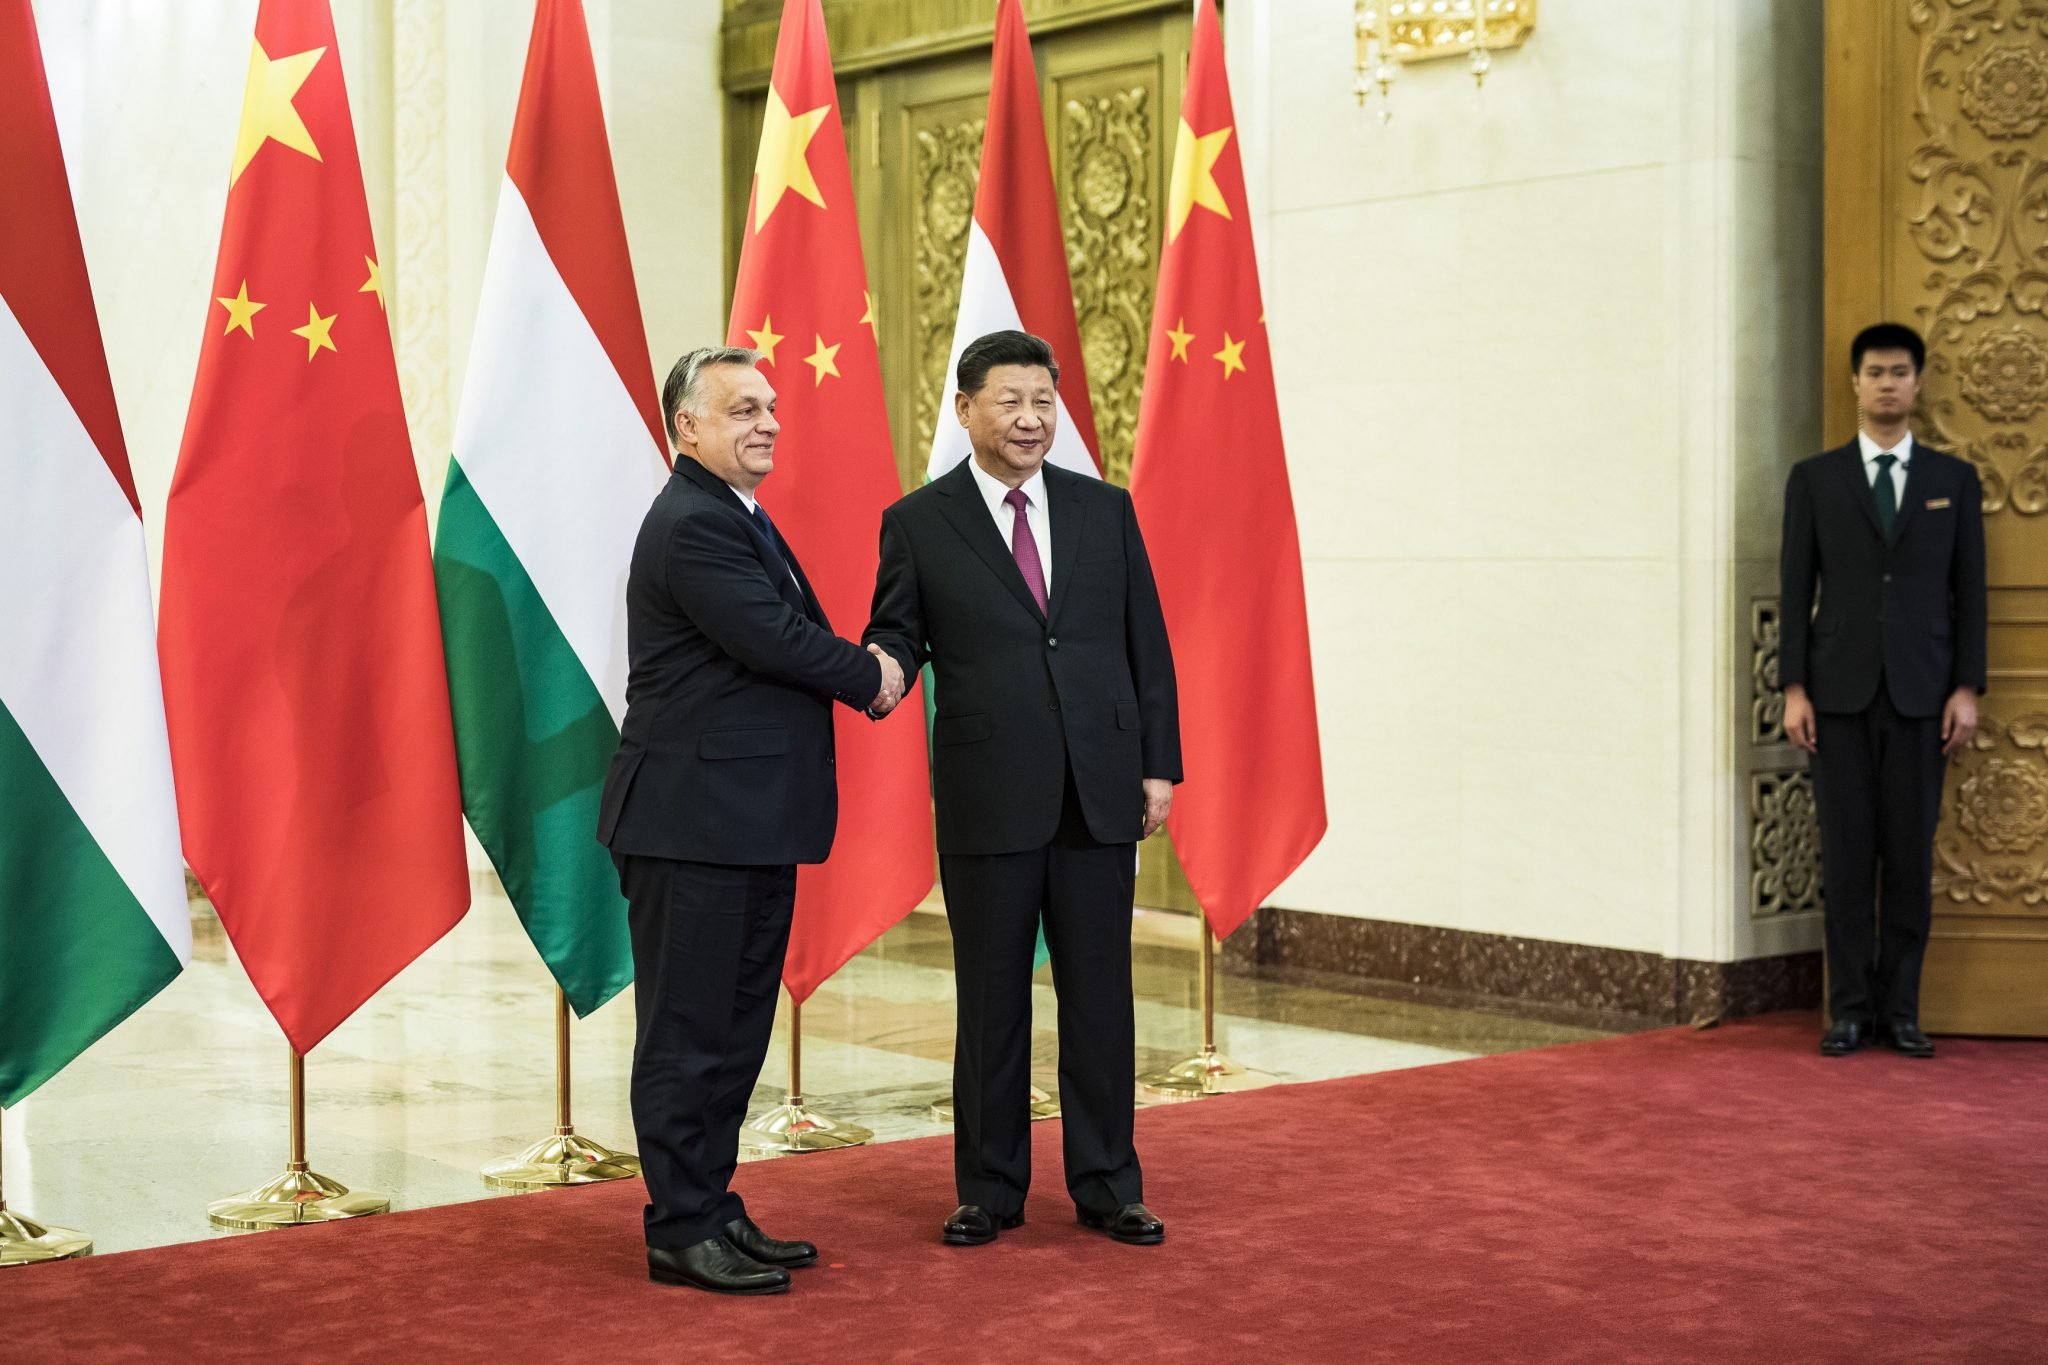 Shaking Hands with the Dragon: Hungary-China Relations